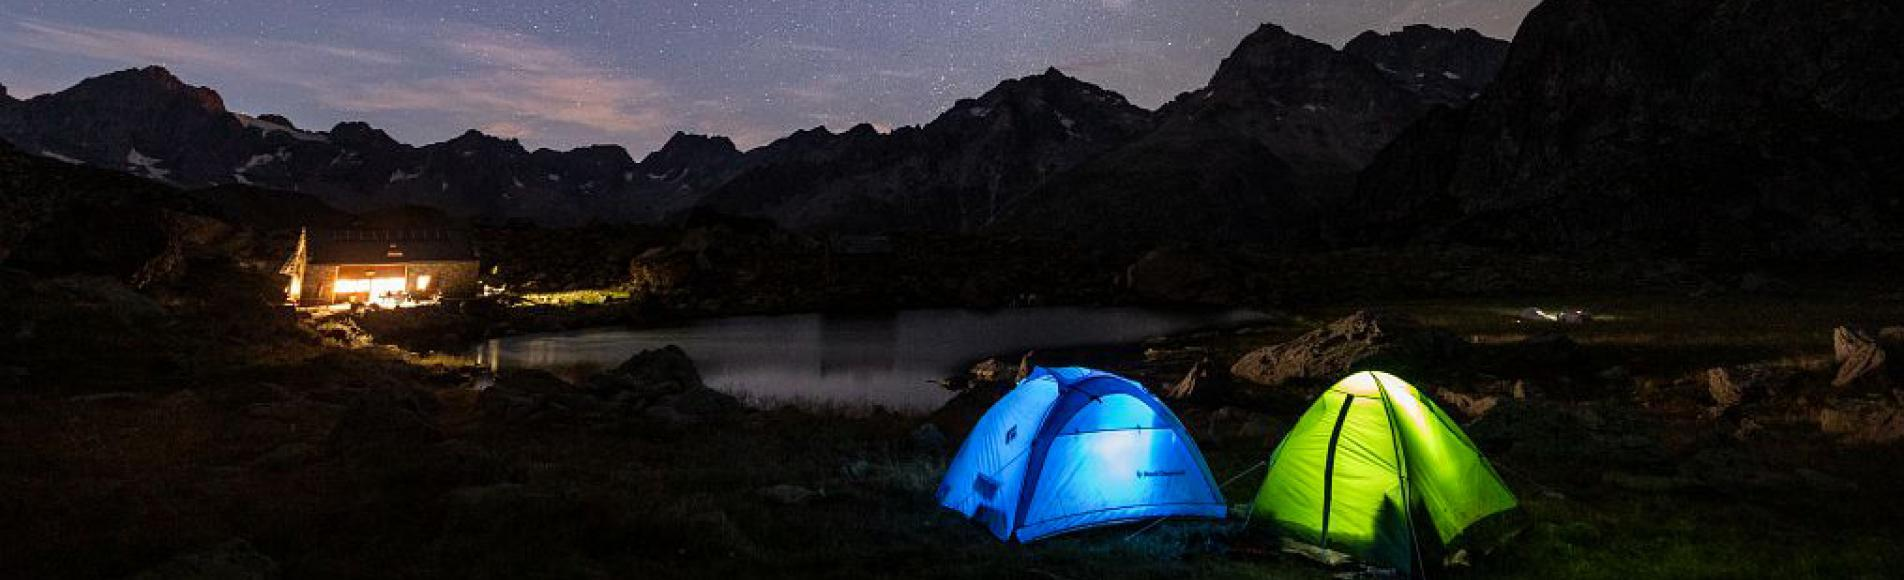 Bivouac - Vallonpierre - photo T.Blais - Parc national des Ecrins